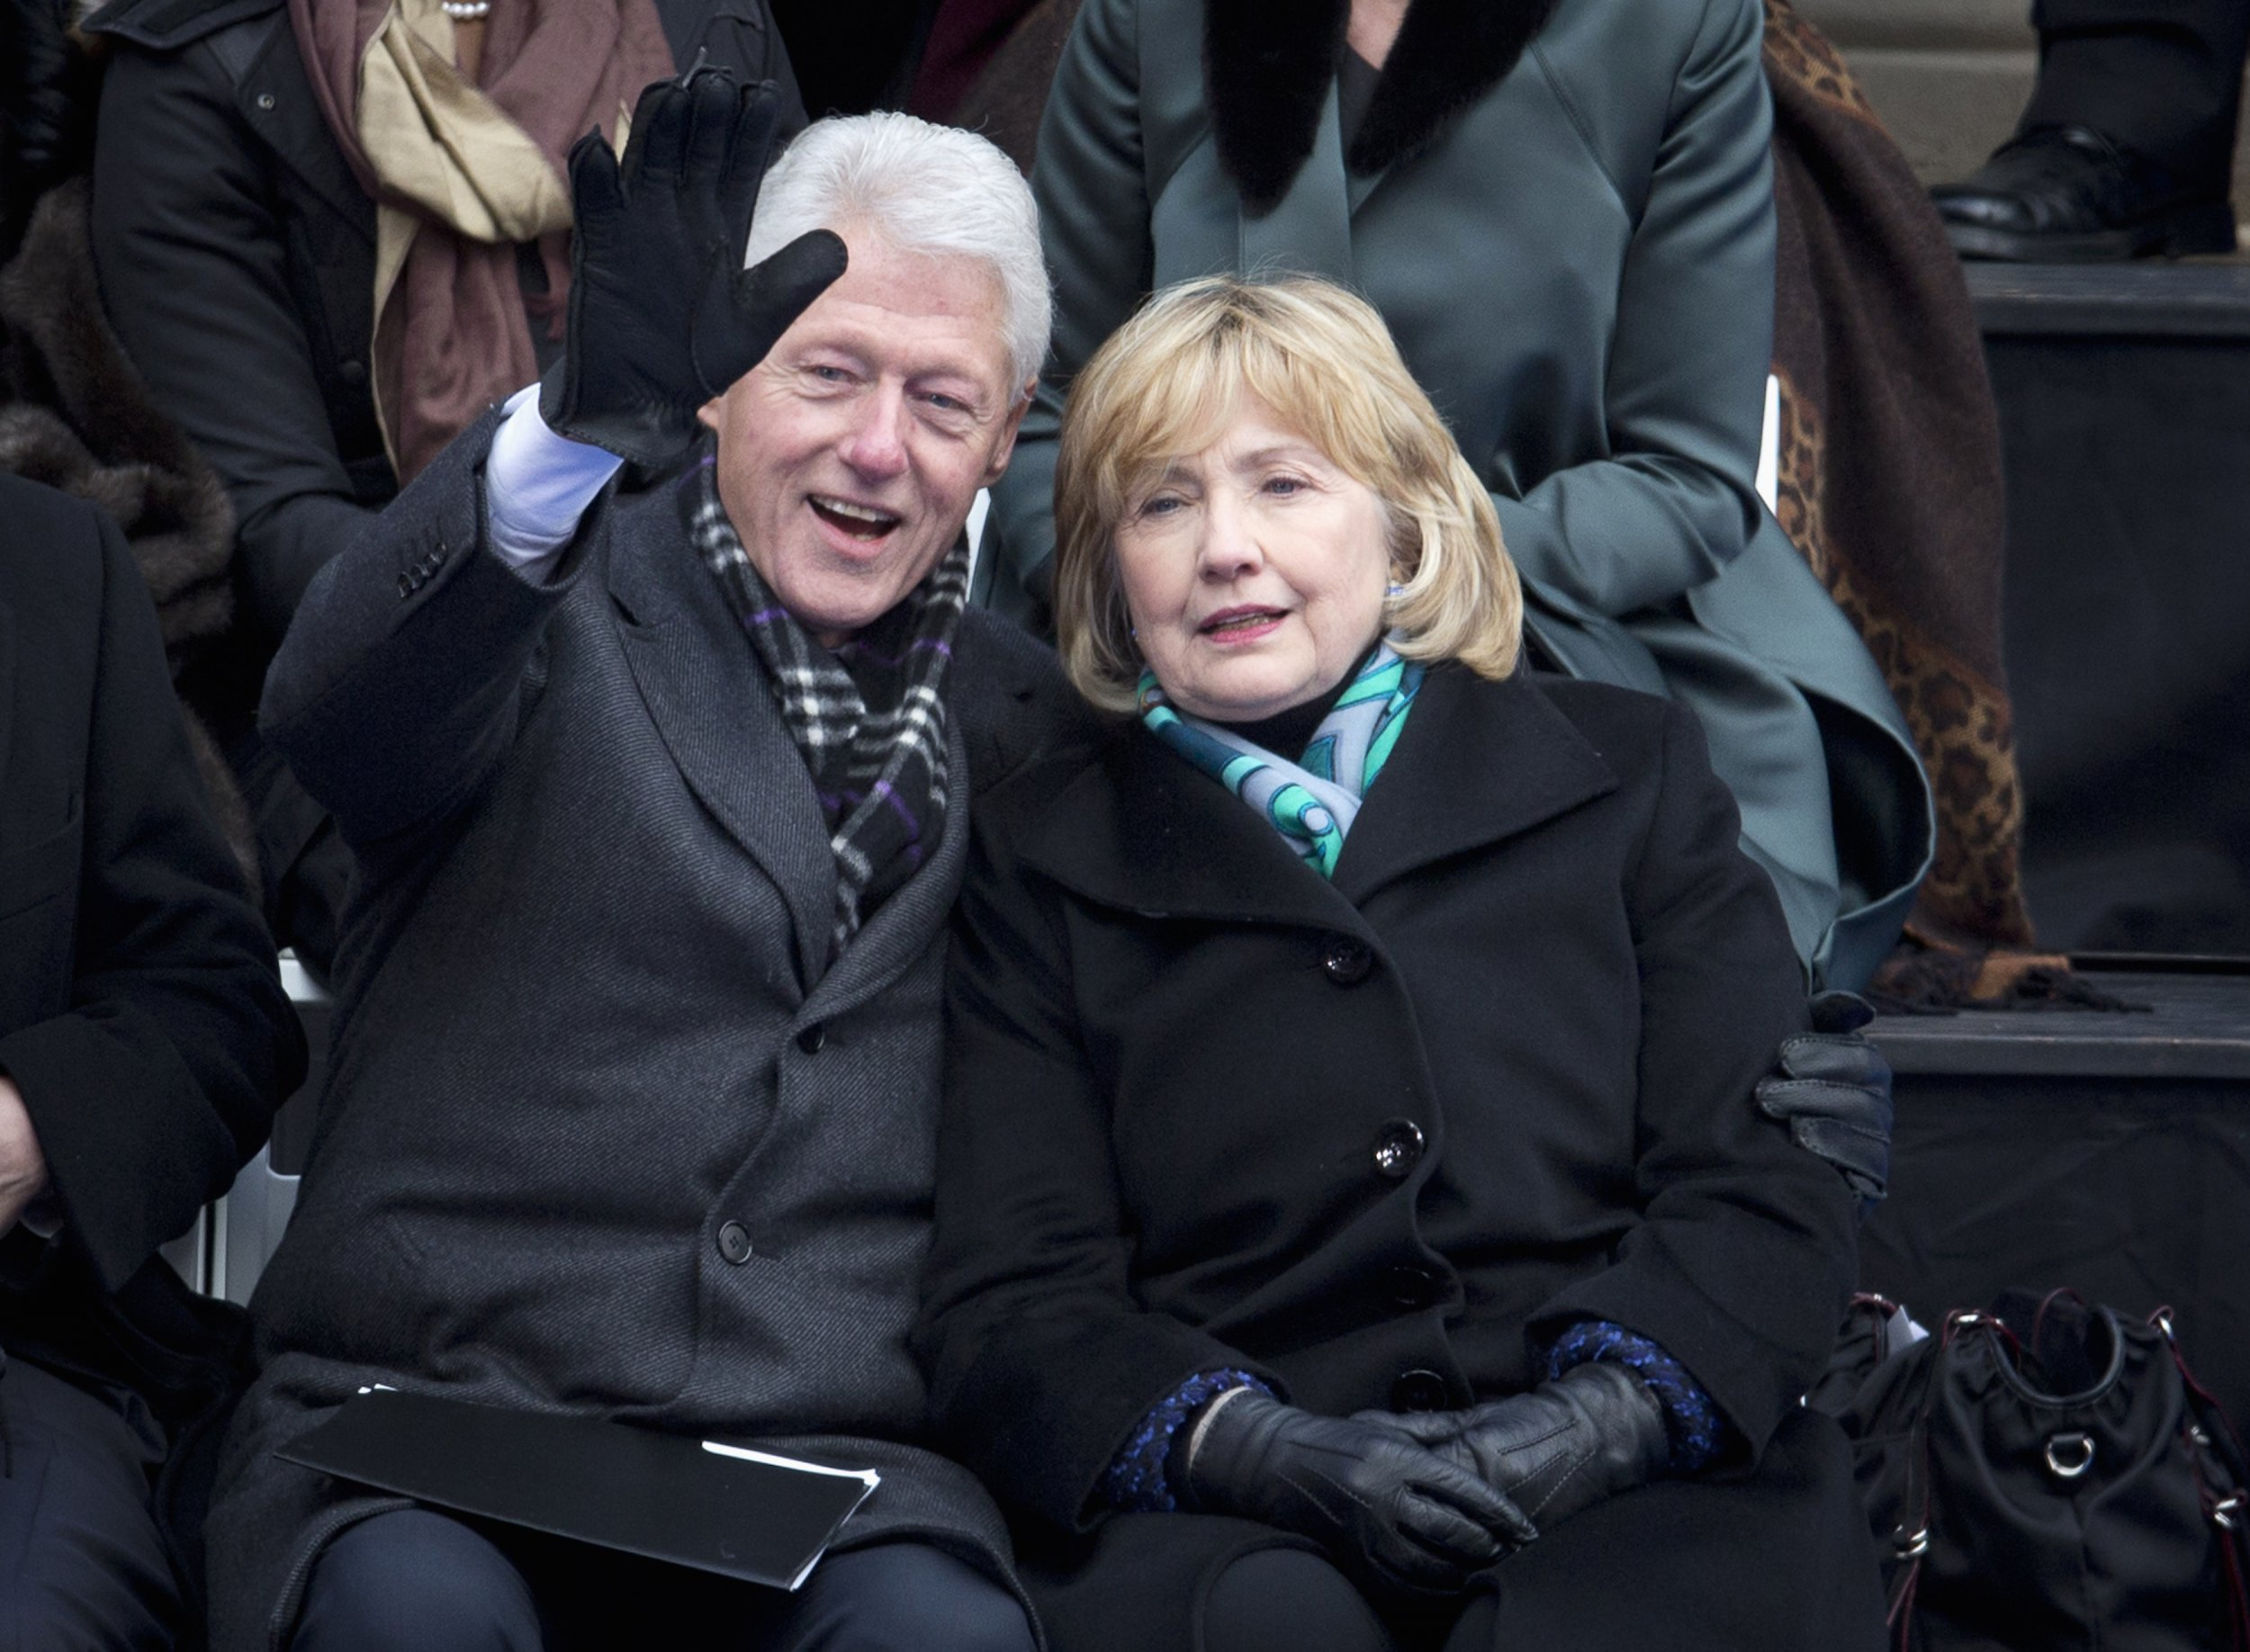 Bill and Hillary ClintonBill Clinton And Hillary Clinton 2014